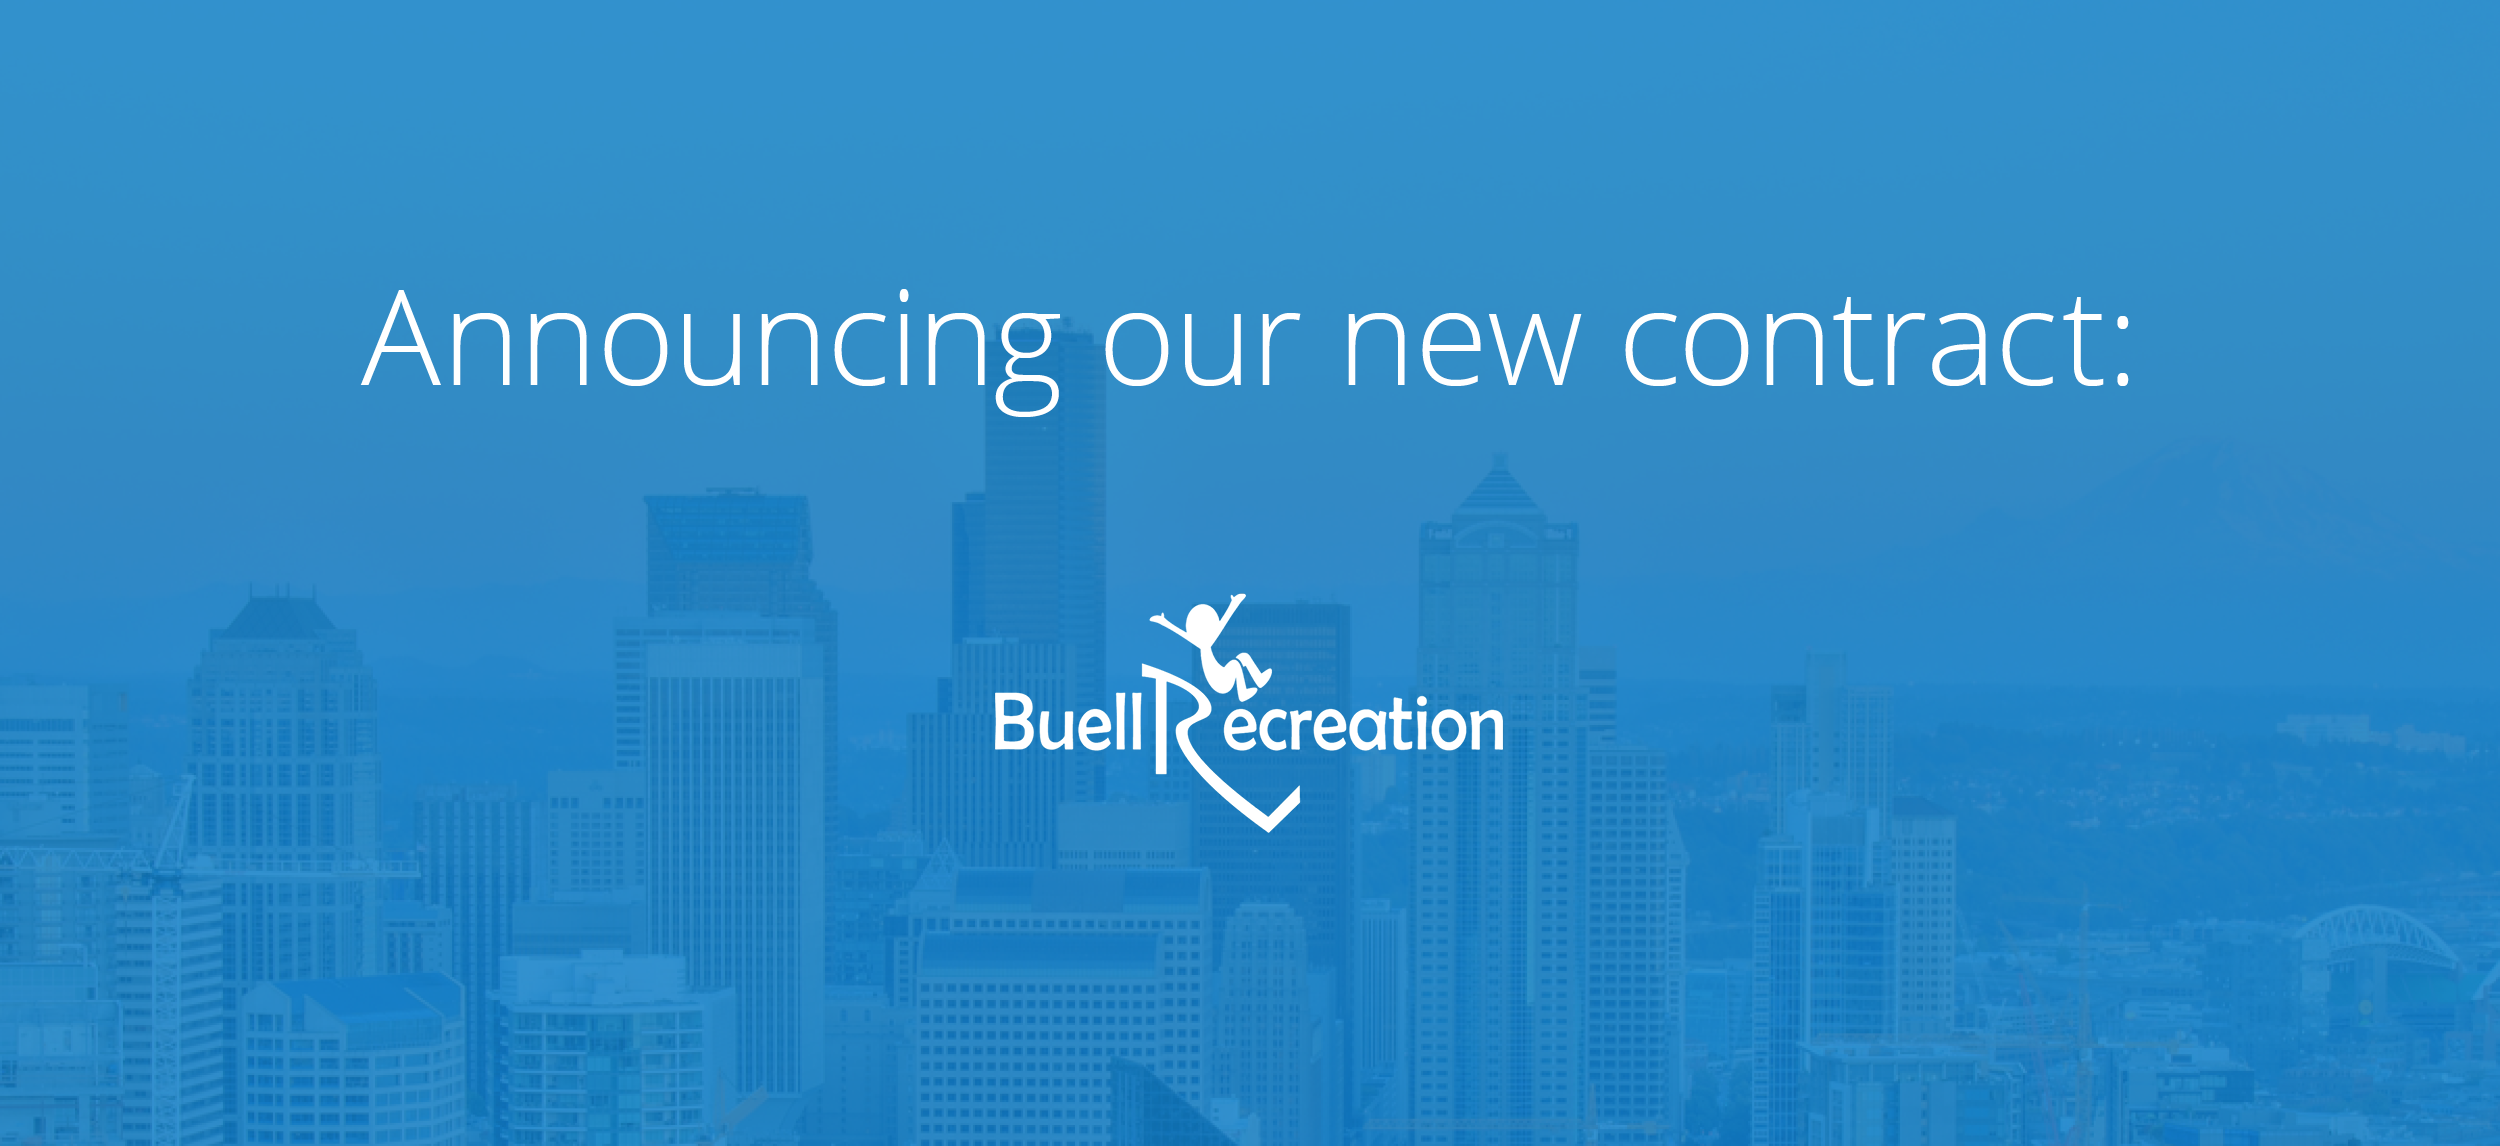 Announcing Buell Recreation, LLC: Our Newest Contract